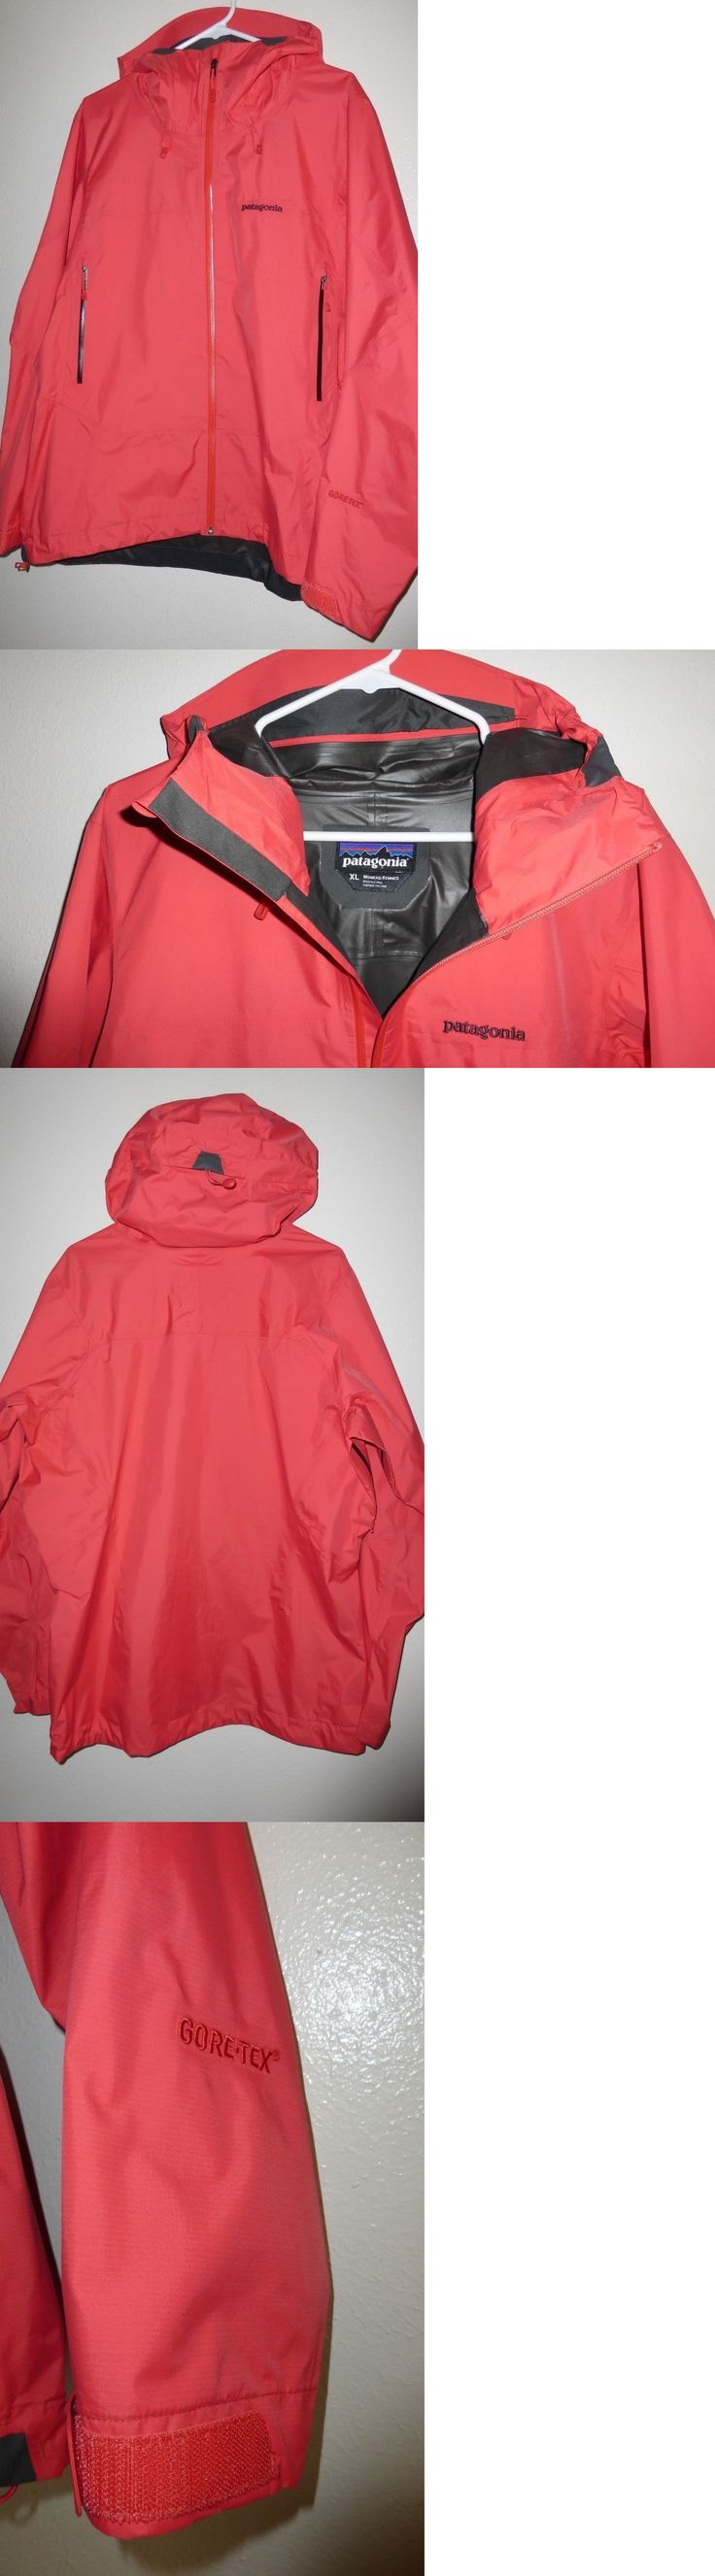 Coats and Jackets 181365: Patagonia Women S Supercell Gore-Tex Jacket, Tmt, Xl -> BUY IT NOW ONLY: $155 on eBay!